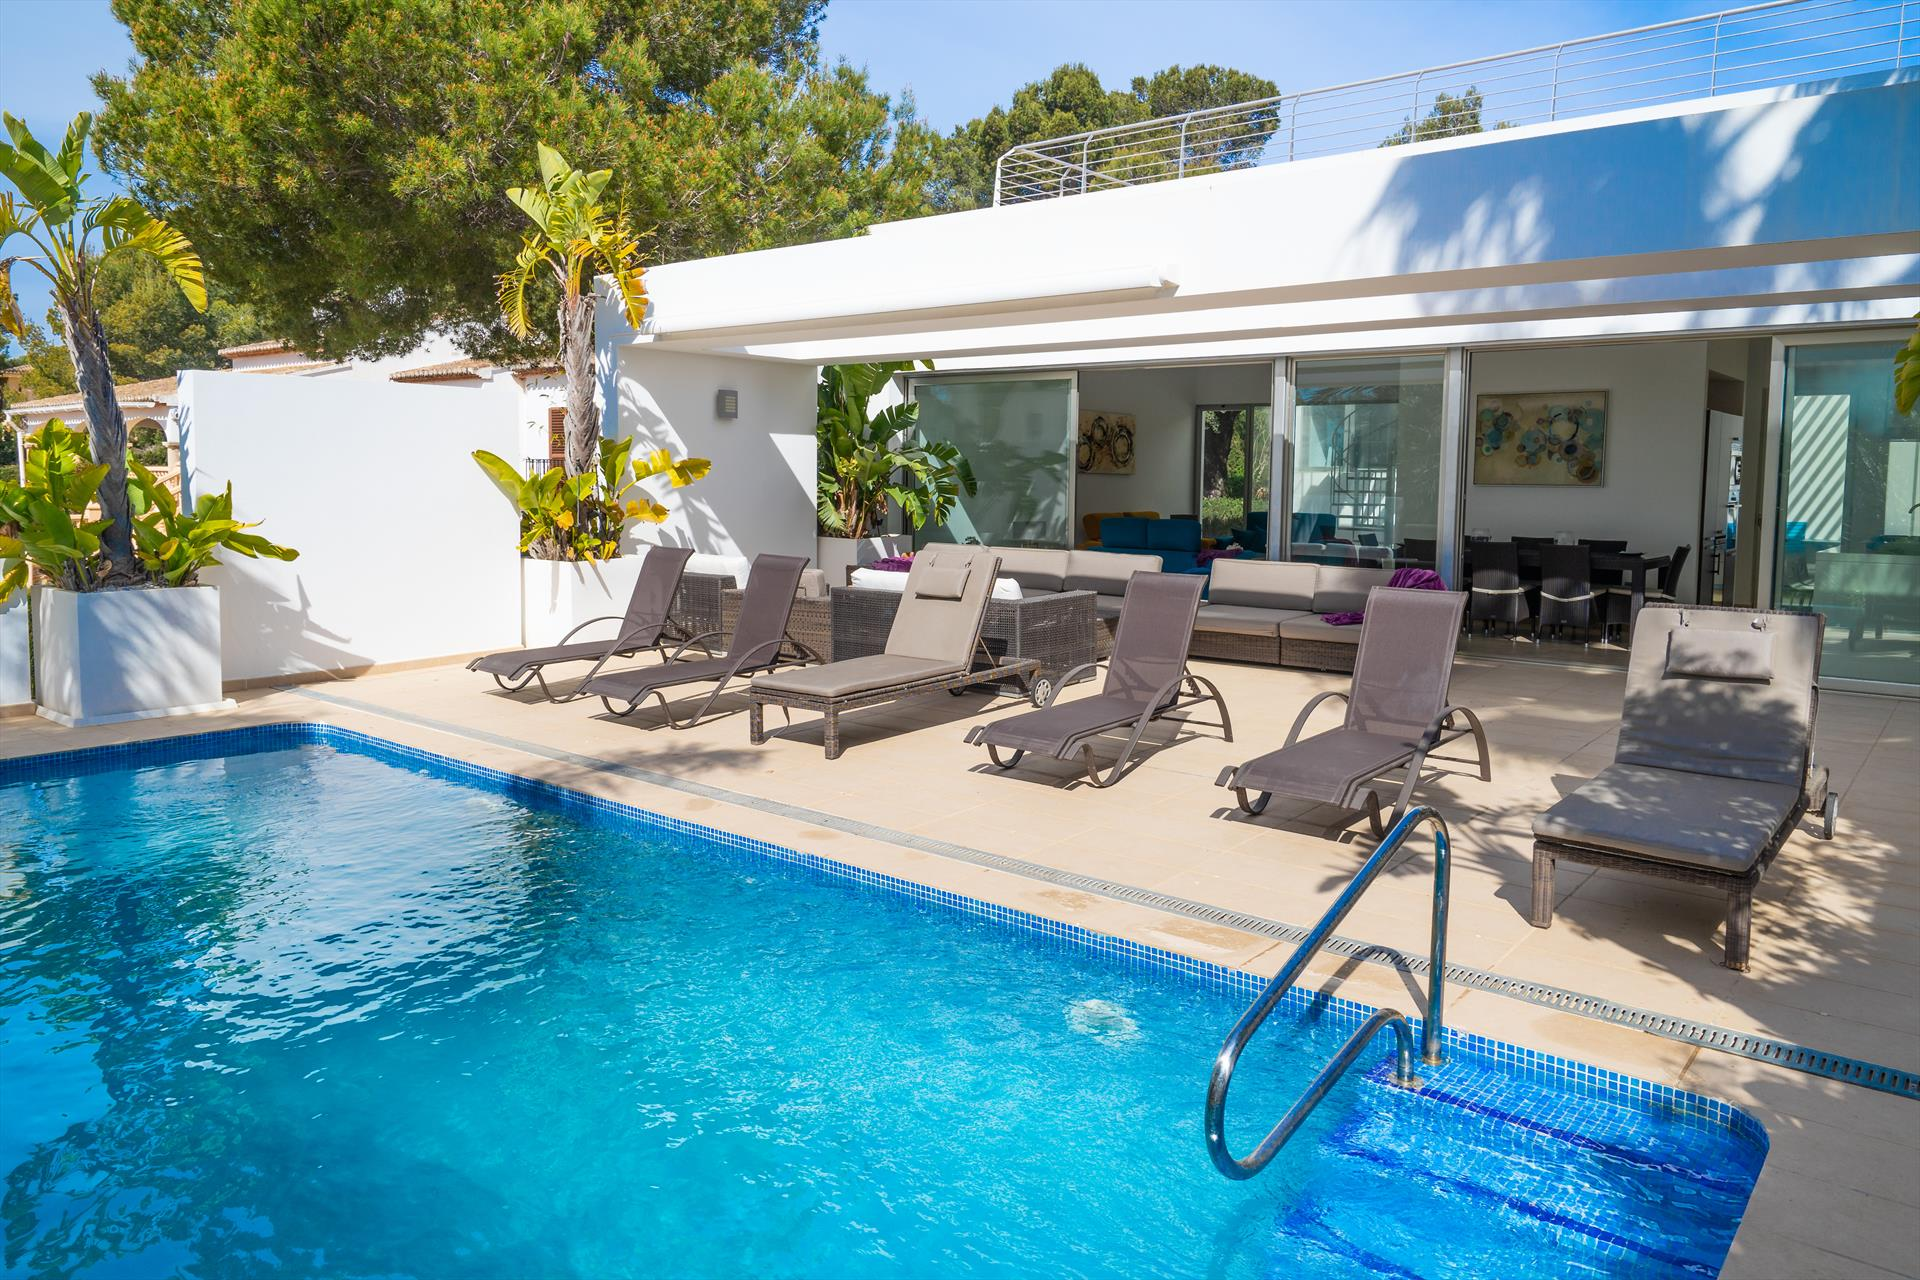 Casa Elche 6 pax, Modern and nice villa  with heated pool in Javea, on the Costa Blanca, Spain for 6 persons.....